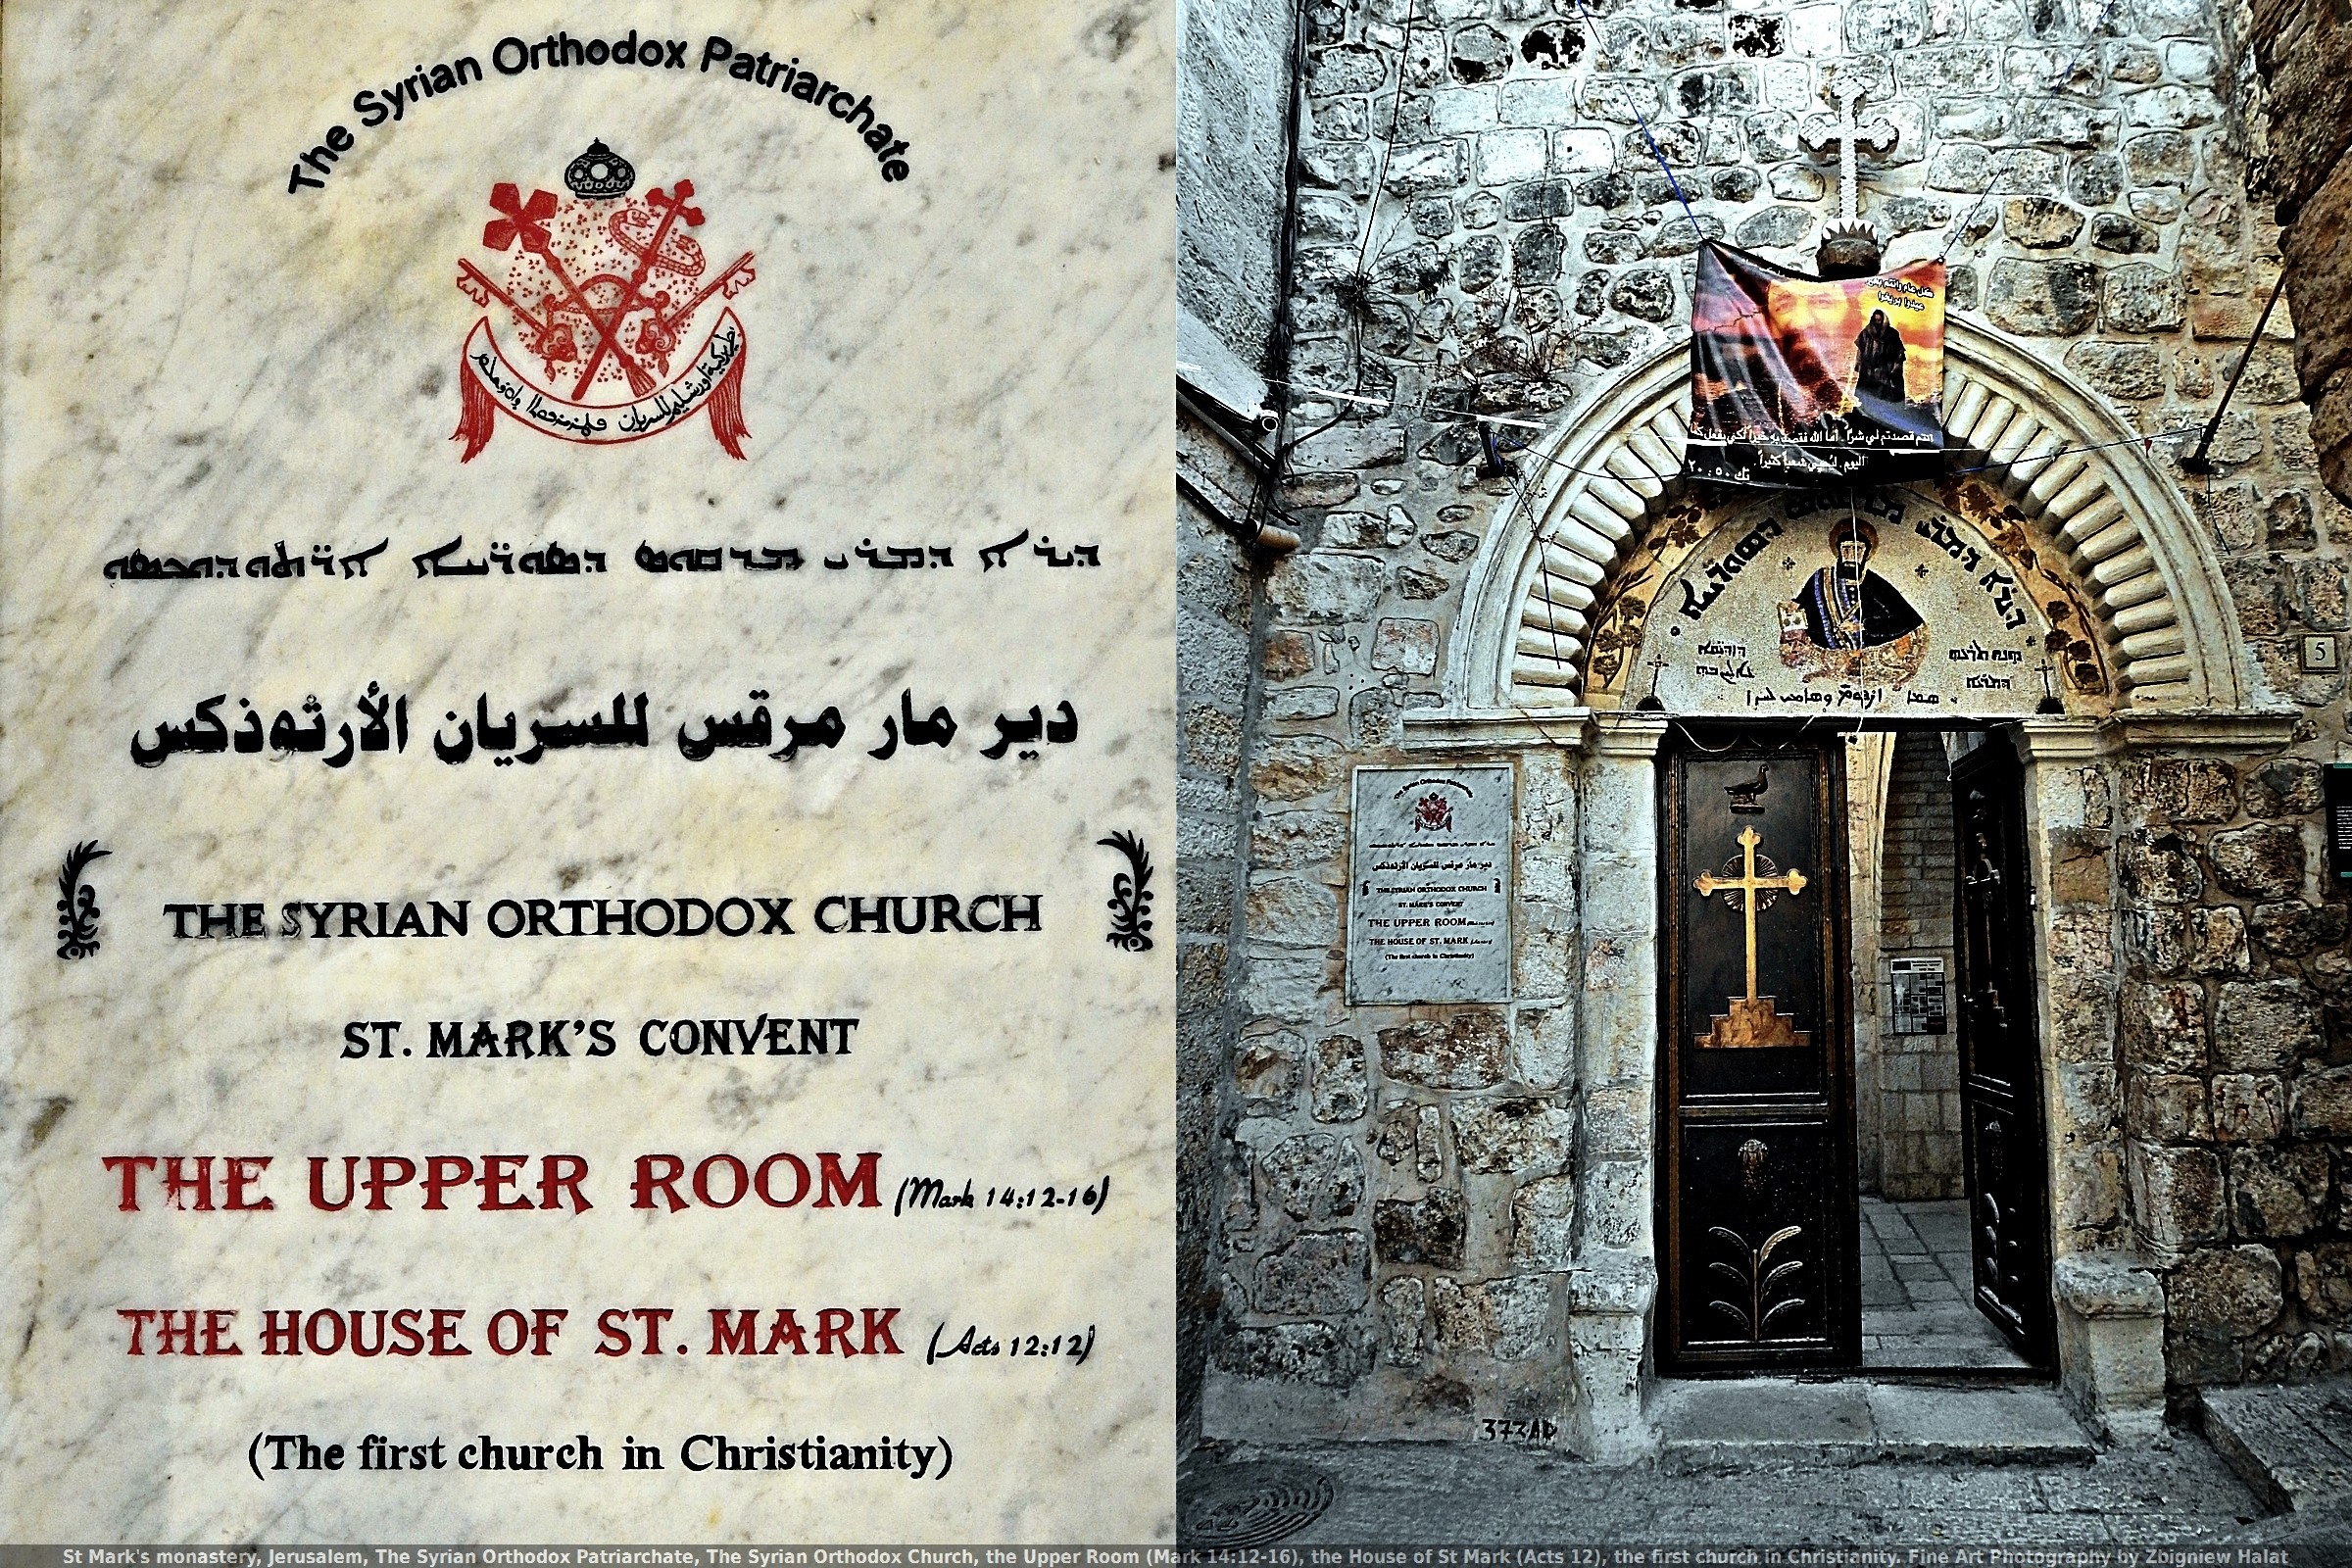 St Marks monastery, Jerusalem, The Syrian Orthodox Patriarchate, The Syrian Orthodox Church, the Upper Room (Mark 14:12-16), the House of St Mark (Acts 12), the first church in Christianity. Fine Art Photography by Zbigniew Halat